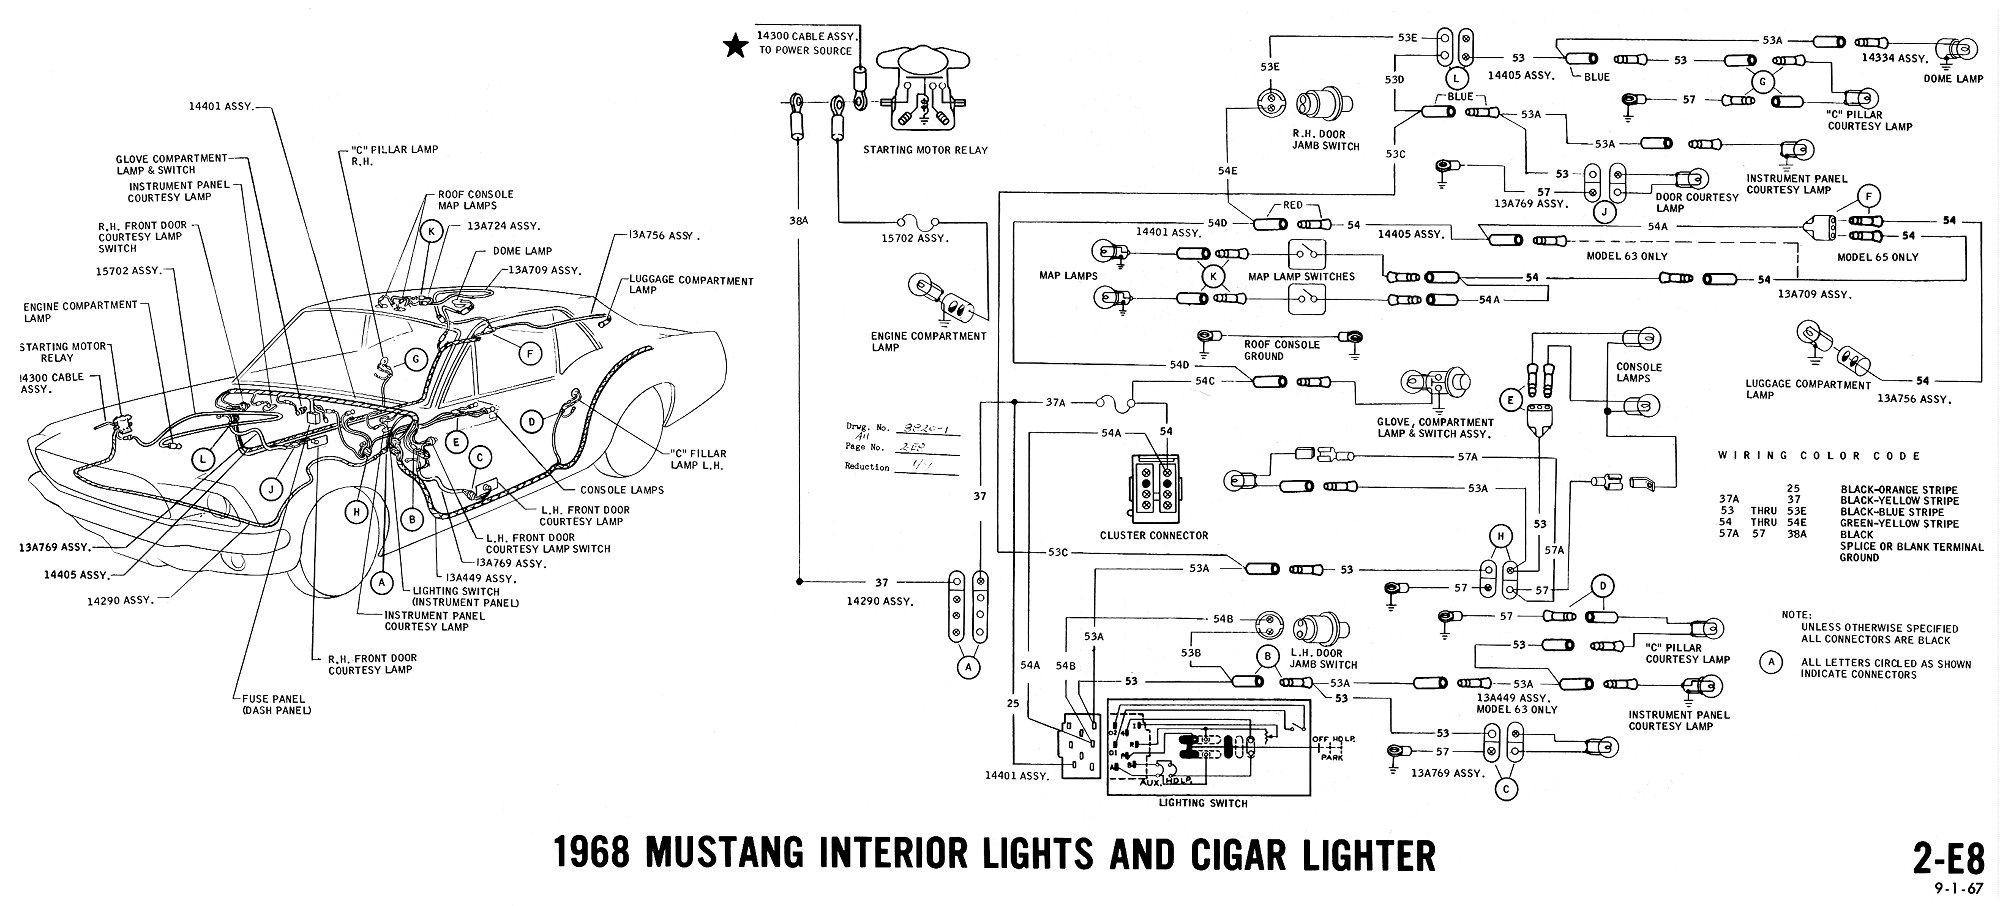 68 Mustang Ac Wiring Library Air Horn Relay Diagram Car Darren Criss Cigar Lighter Interior Lights 1968 Diagrams